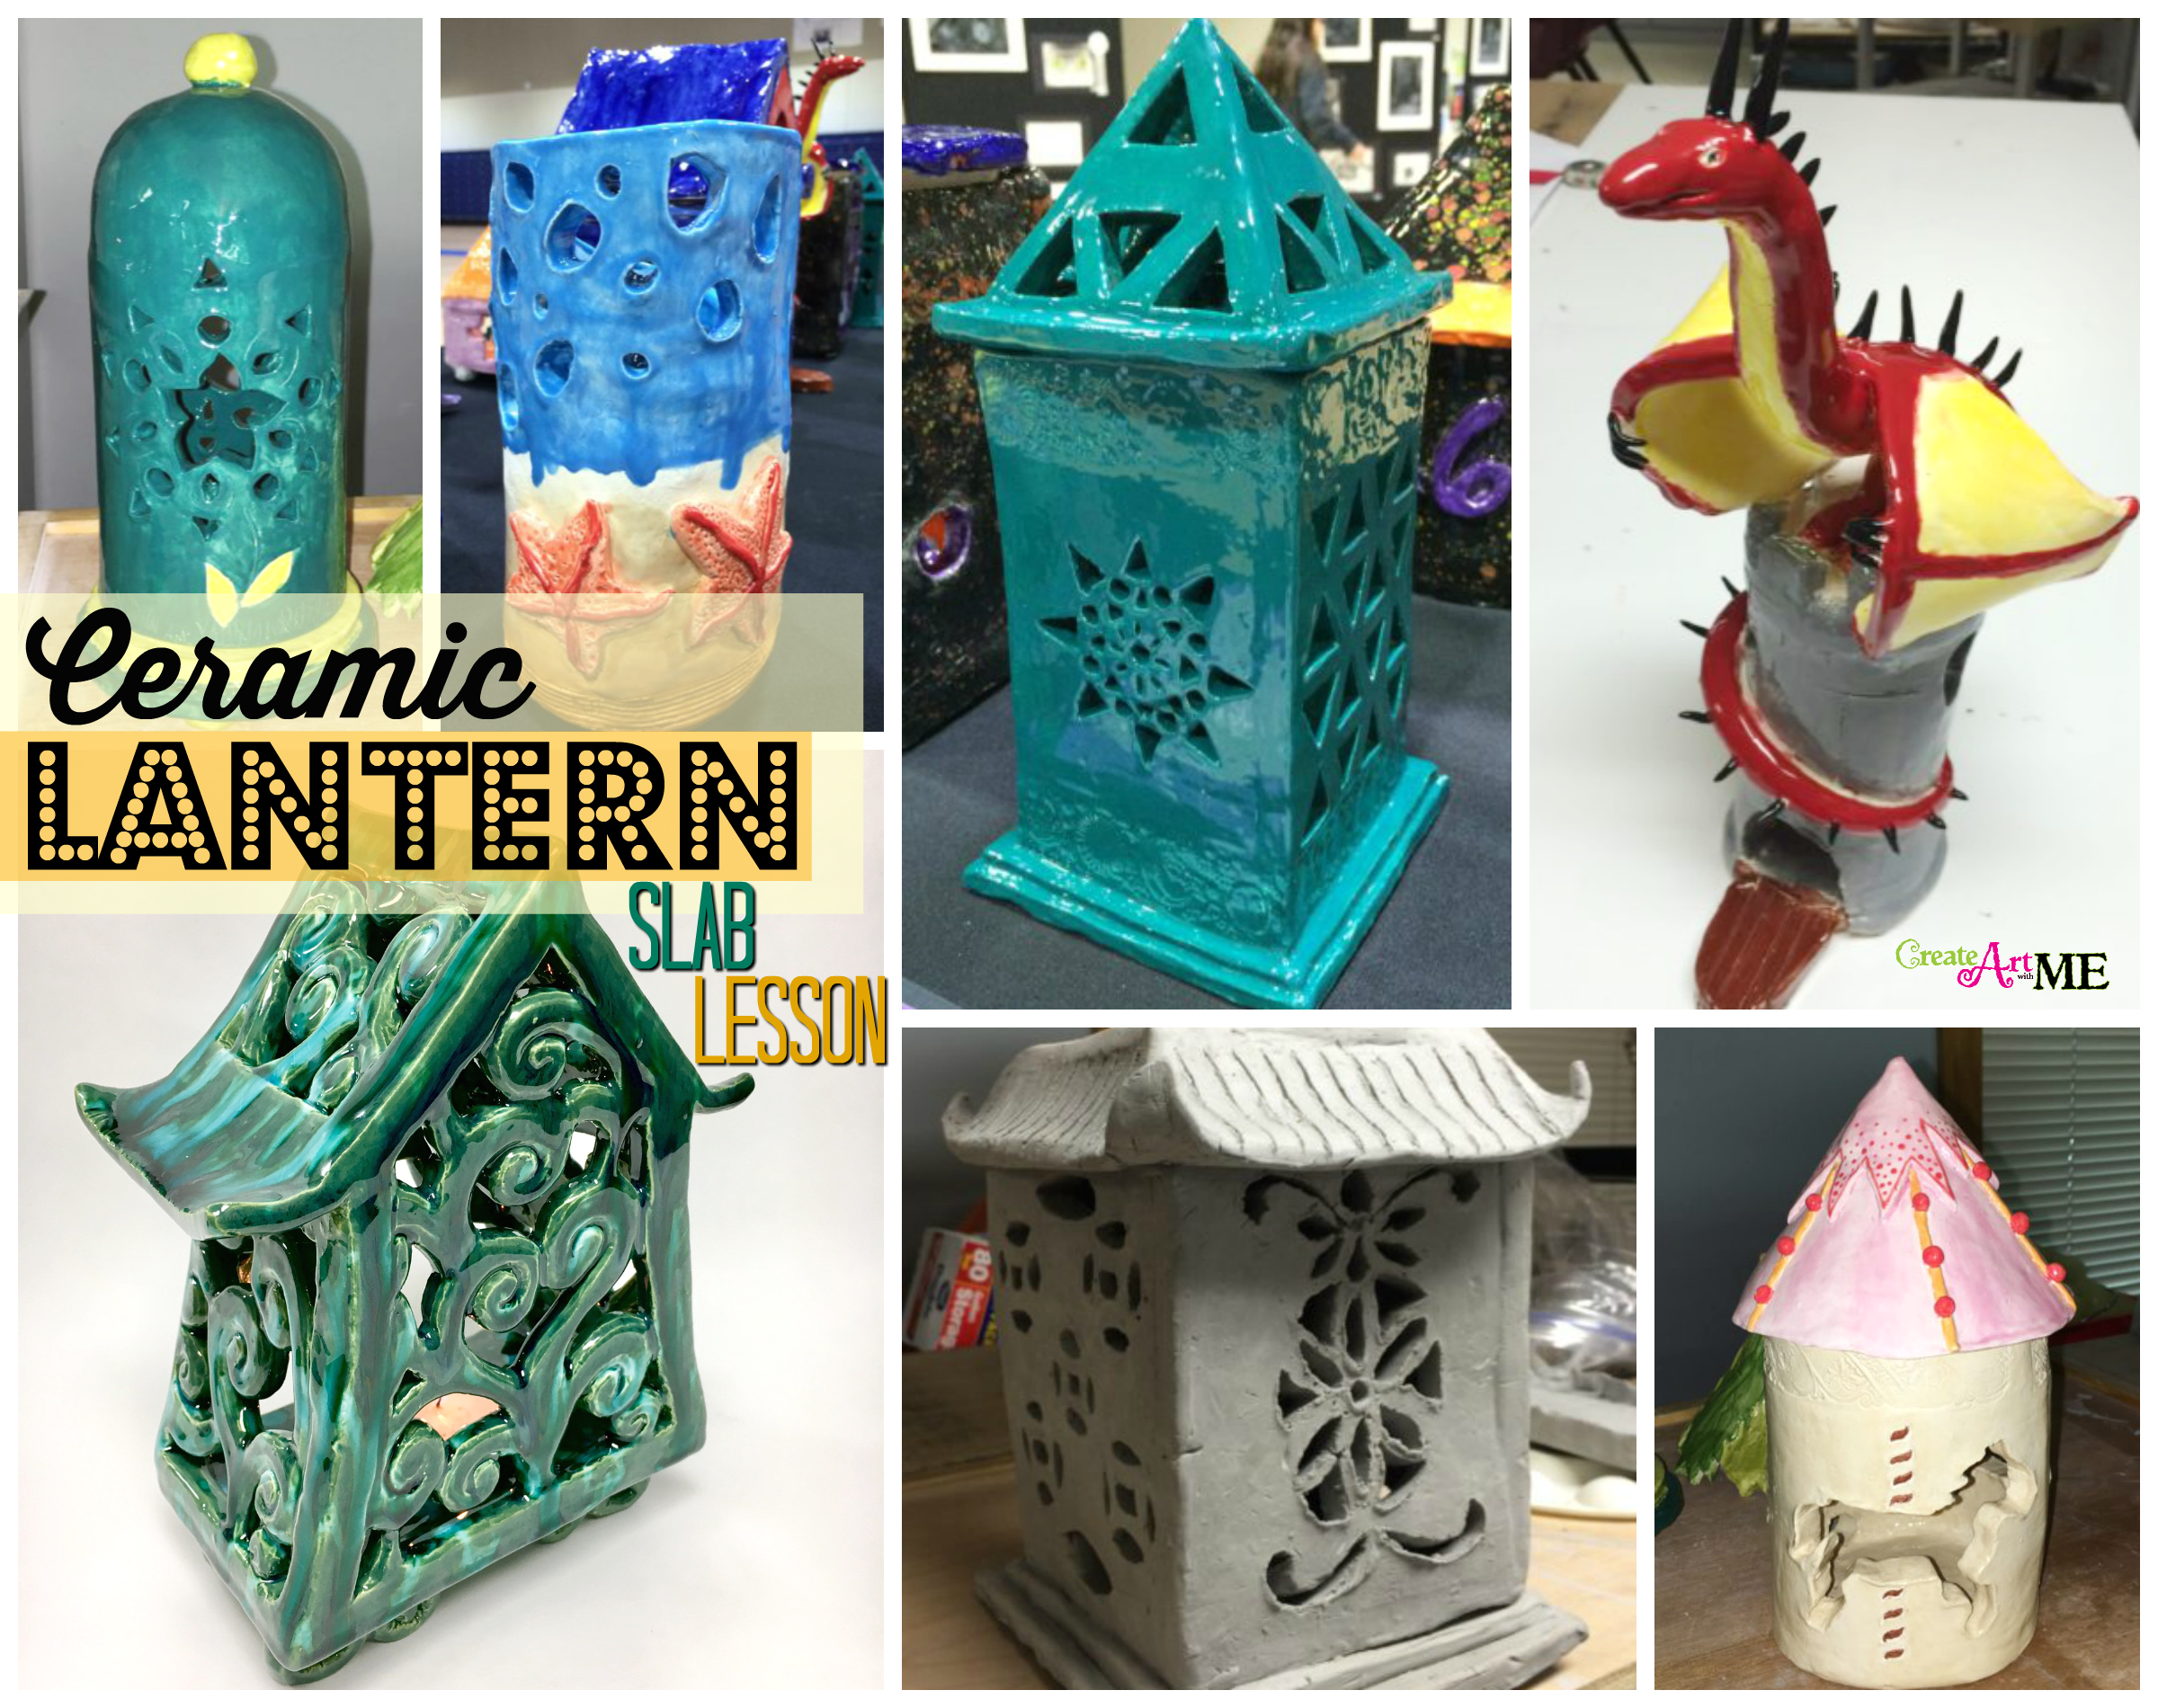 Ceramic Slab Lanterns Cut Out Design Create Art With Me